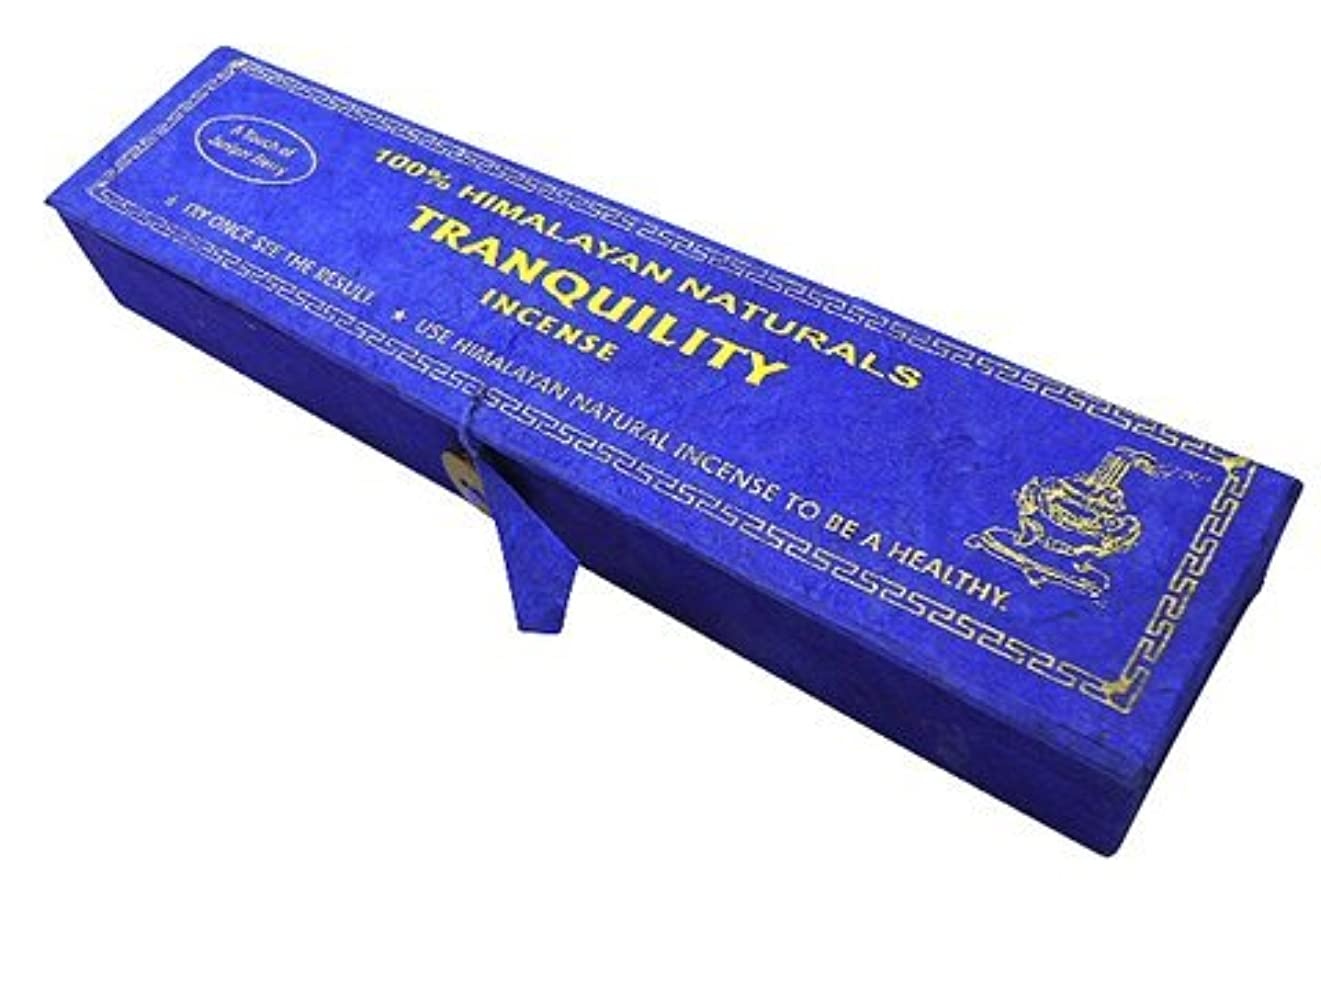 NEPAL INCENSE 【TRANQUILITY INCENSEトランキリティー】